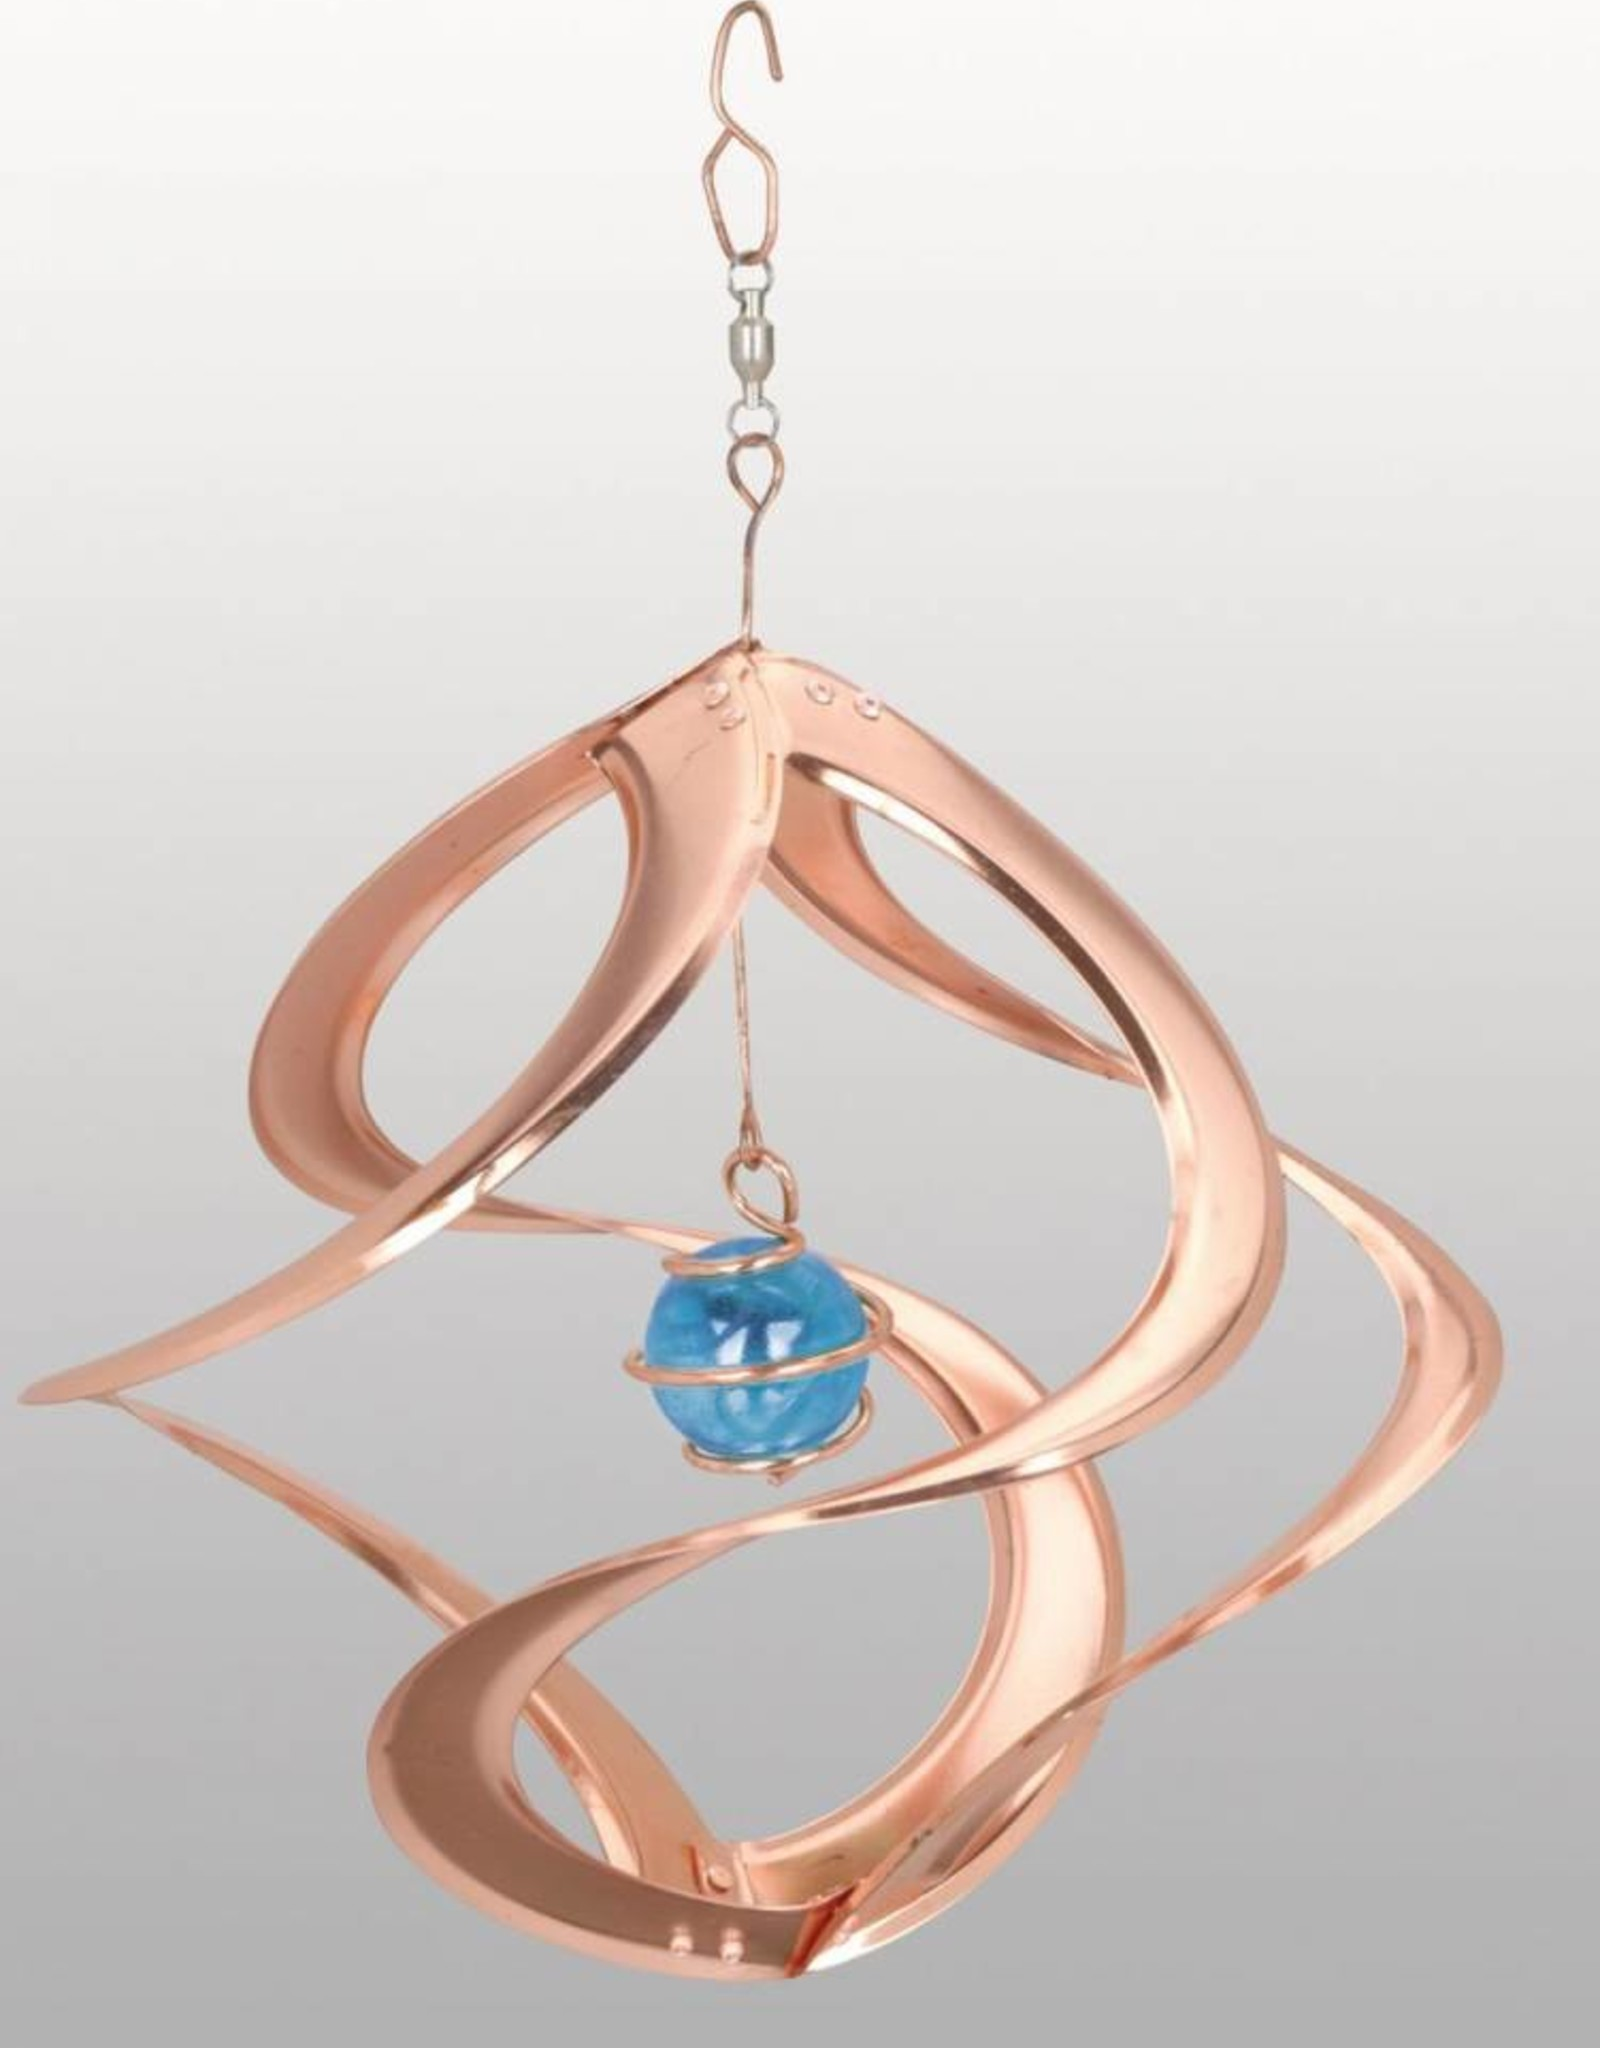 Bear Den Helix Hanging Helix - 11 Inch Copper with Blue Glass